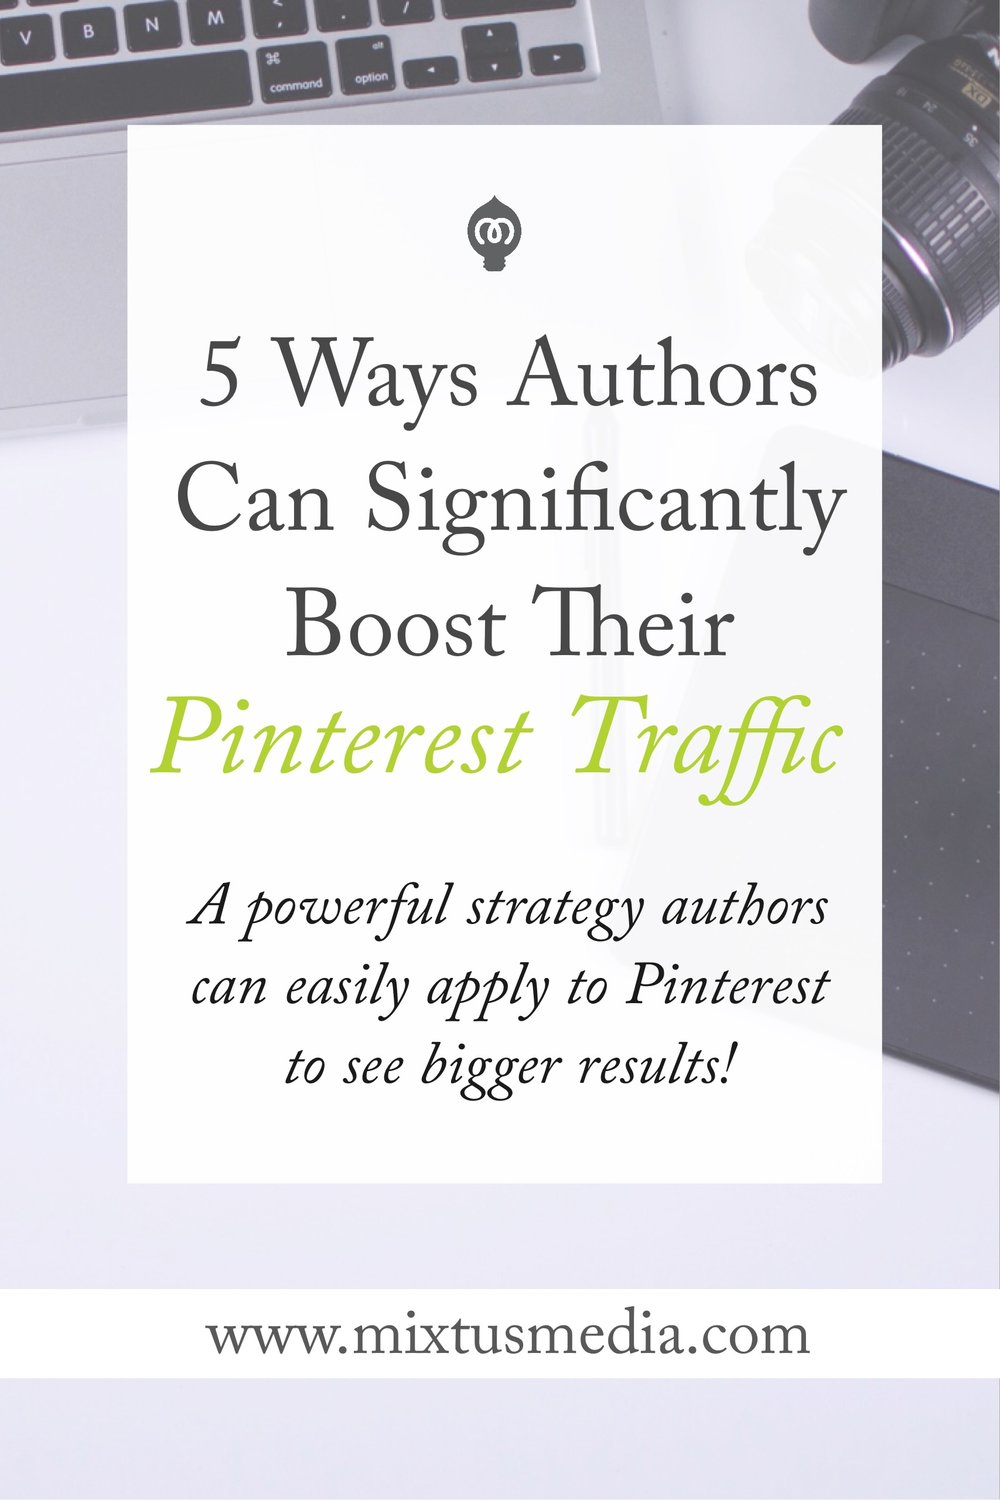 A powerful strategy authors can easily apply to Pinterest to see bigger results!